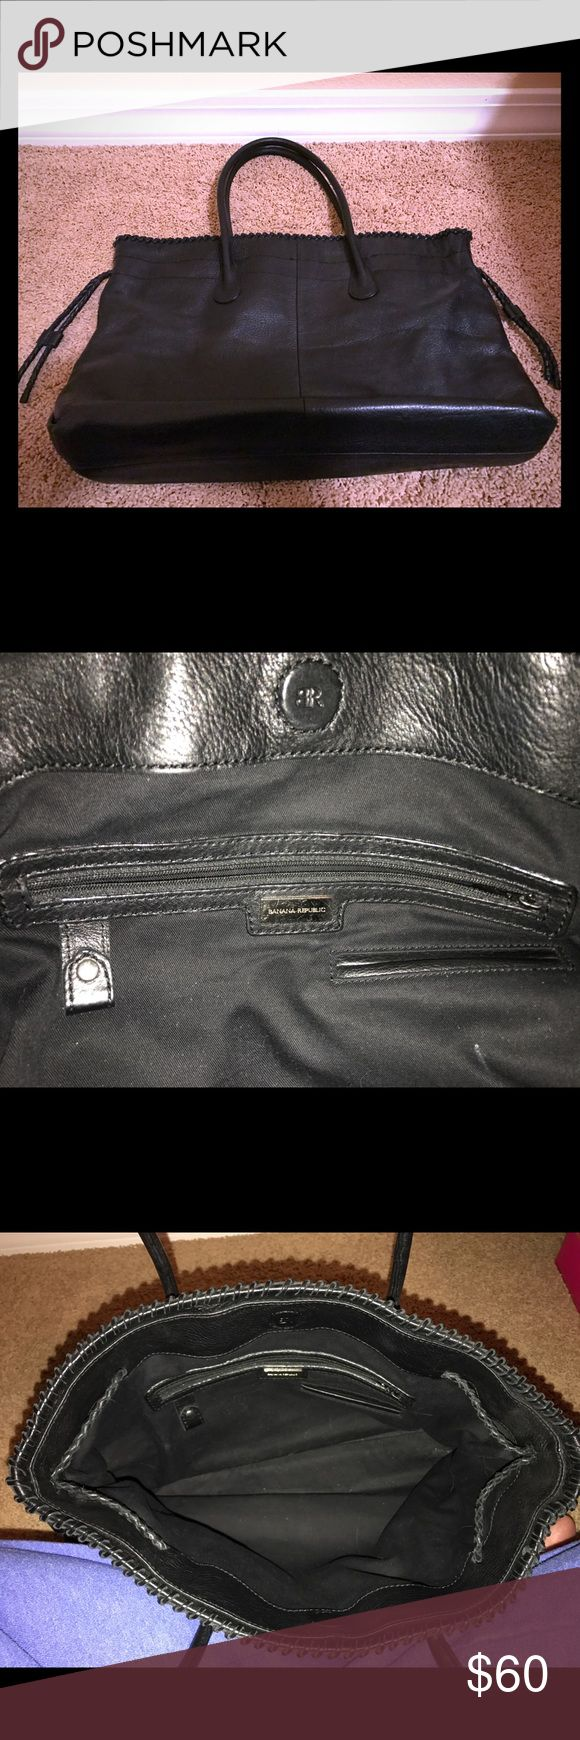 Banana Republic Black Leather Tote Bag Purse Simple black leather tote bag from BR. Great for traveling. Excellent condition. No rips, stains, holes or tears. Banana Republic Bags Totes